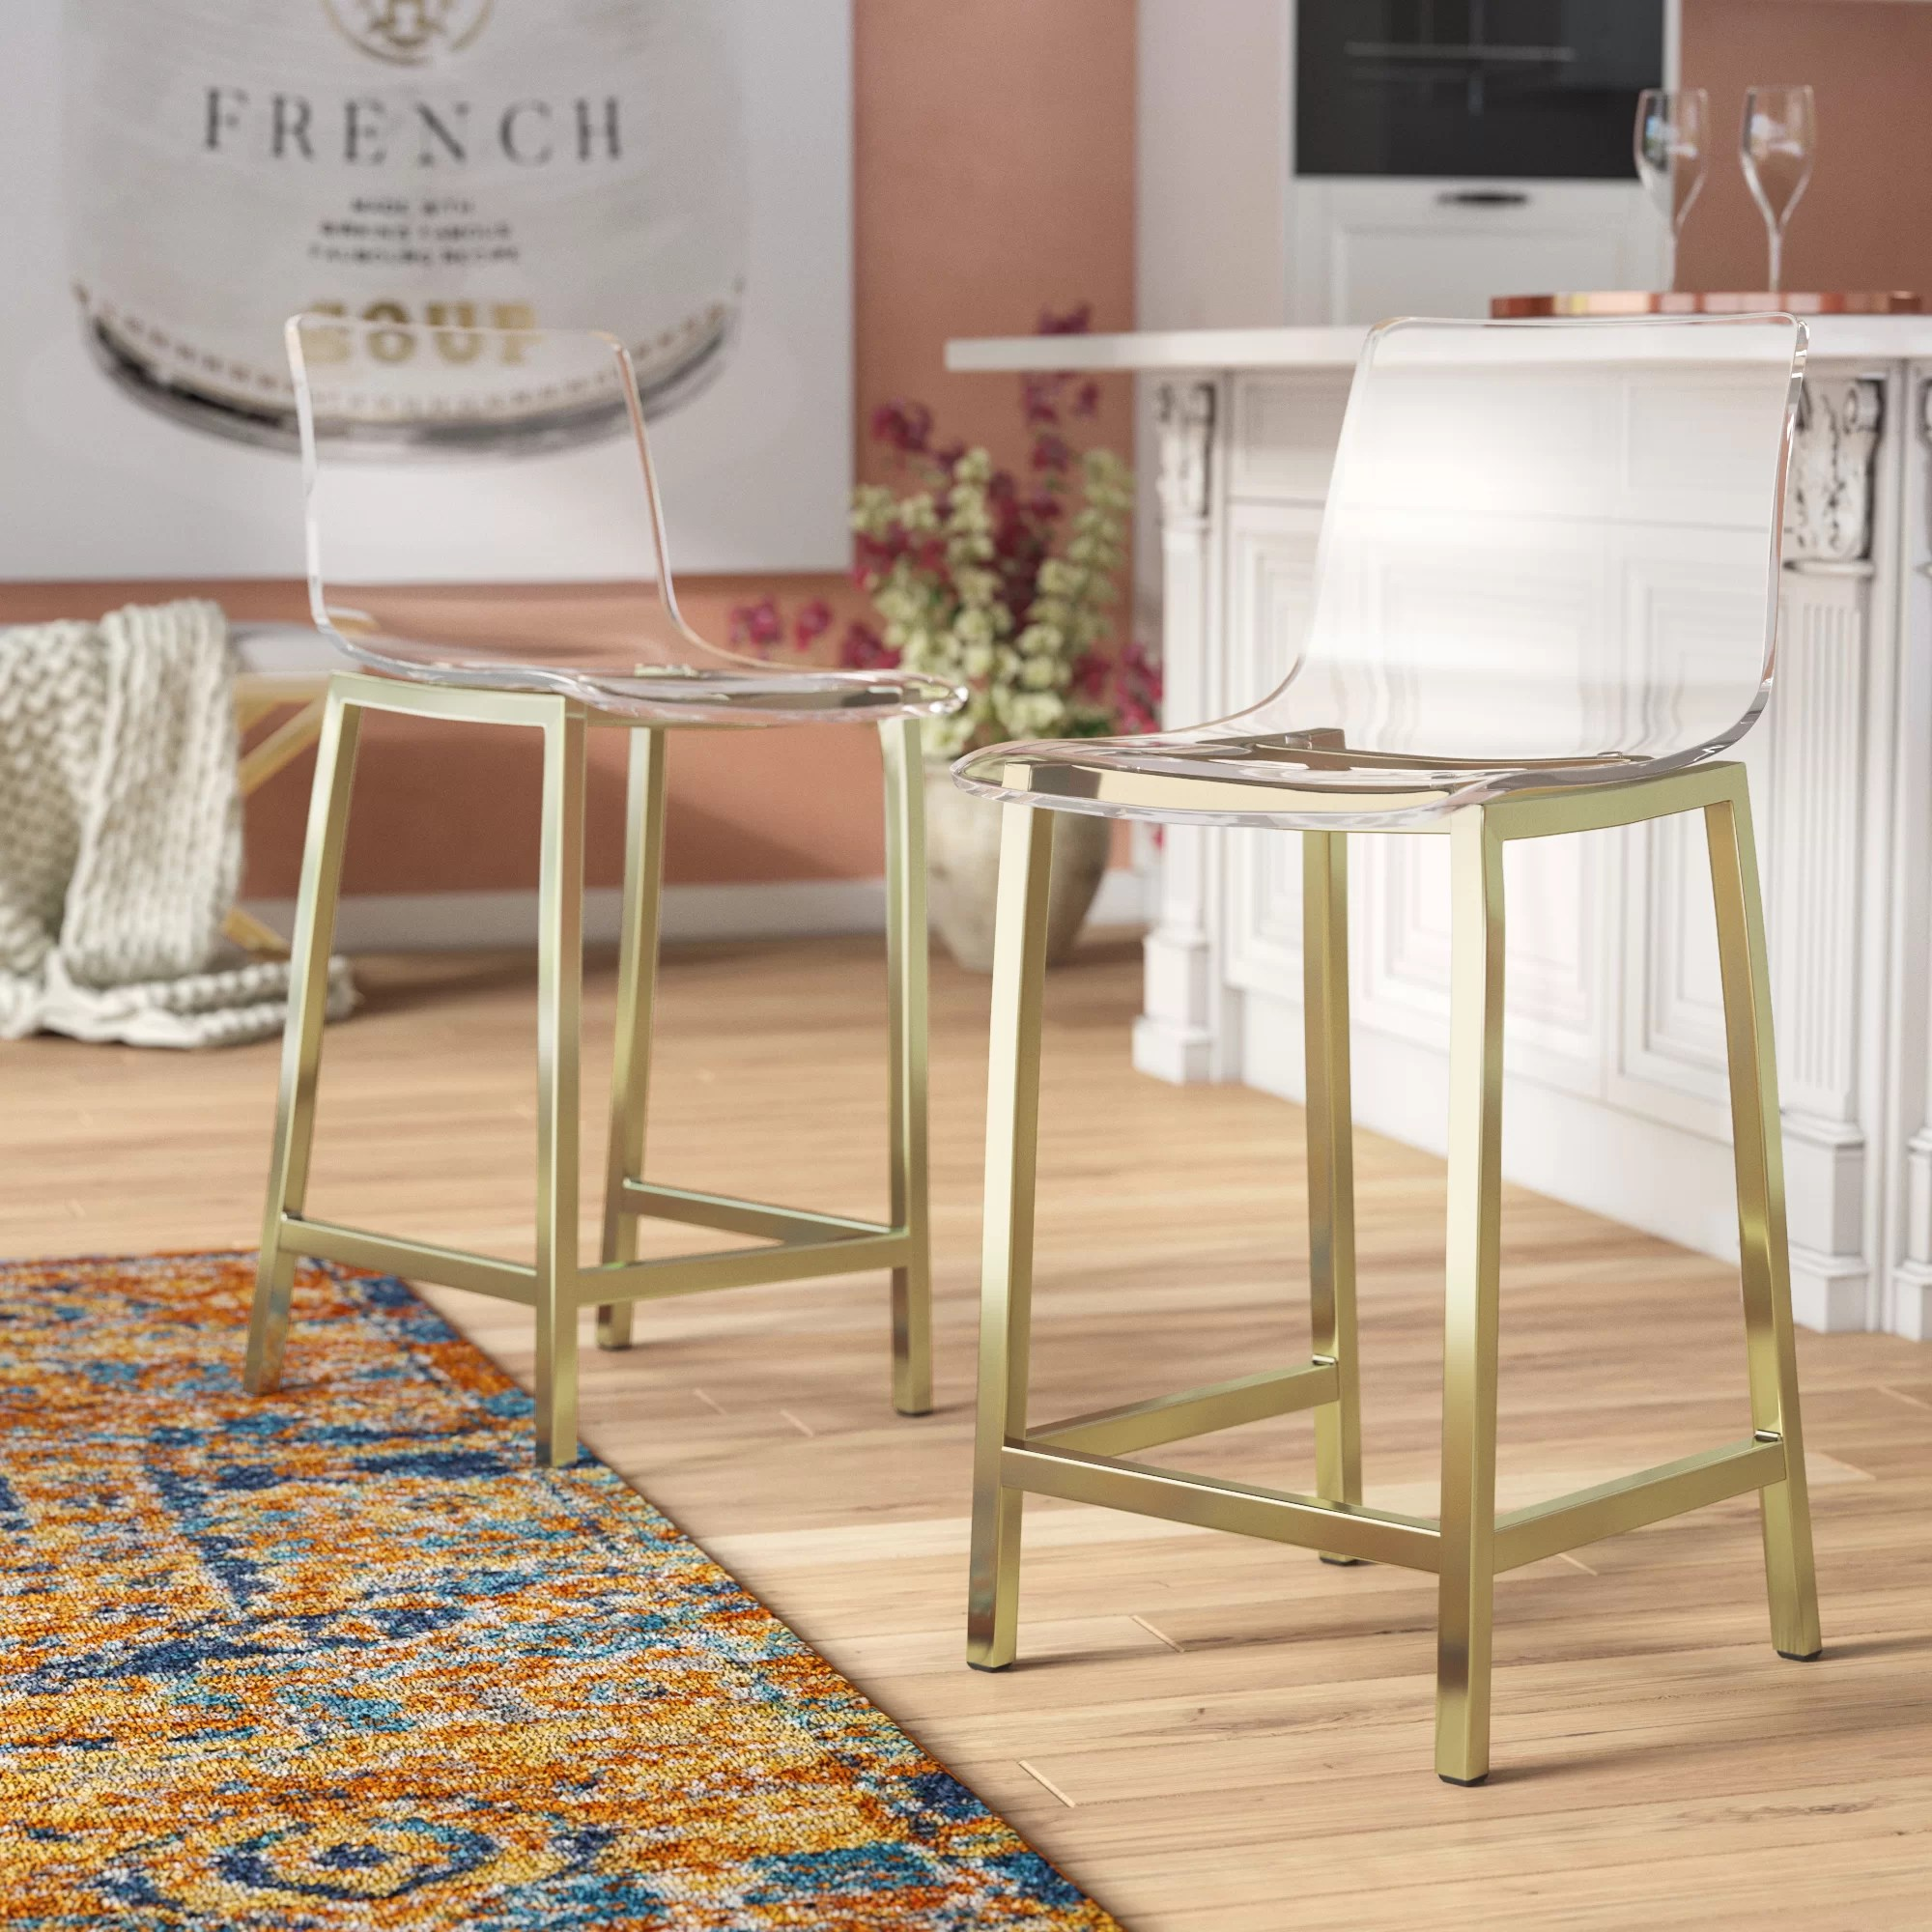 Table And Bar Stools Tim 24